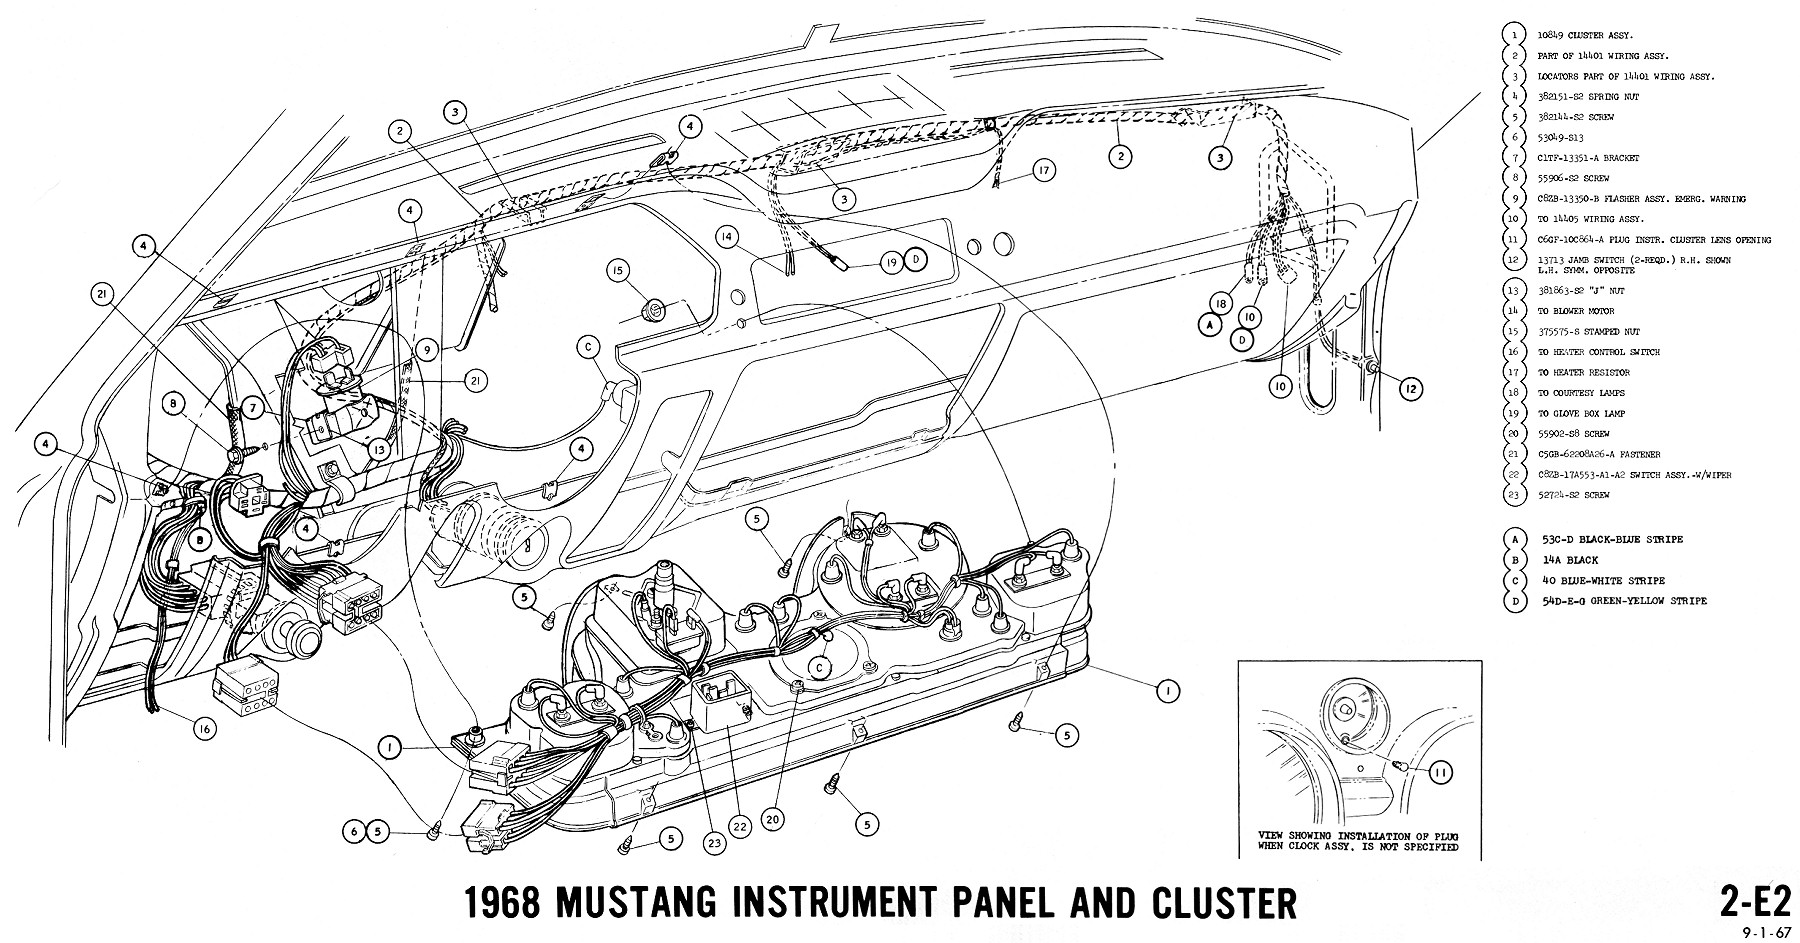 1968 mustang wiring diagram instruments 2 1969 mustang dash wiring diagram 1969 mustang wiring routing 67 mustang wiring harness at crackthecode.co